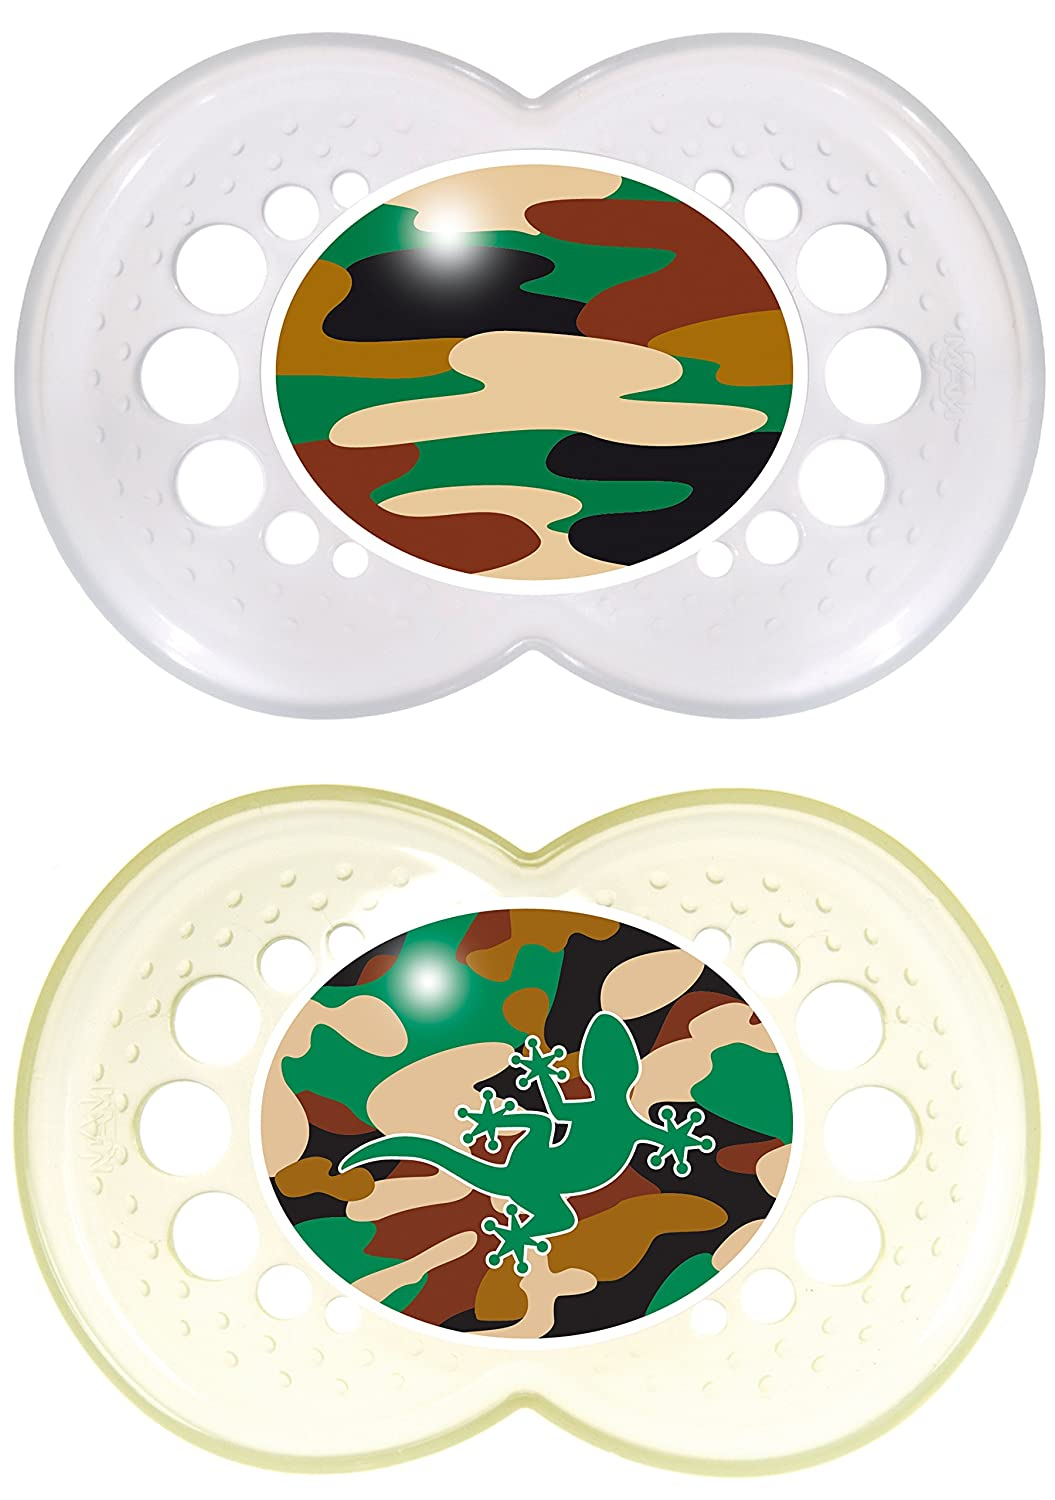 MAM Pacifiers, Baby Pacifier 16+ Months, Best Pacifier for Breastfed Babies, Camo Camouflage Designs,...